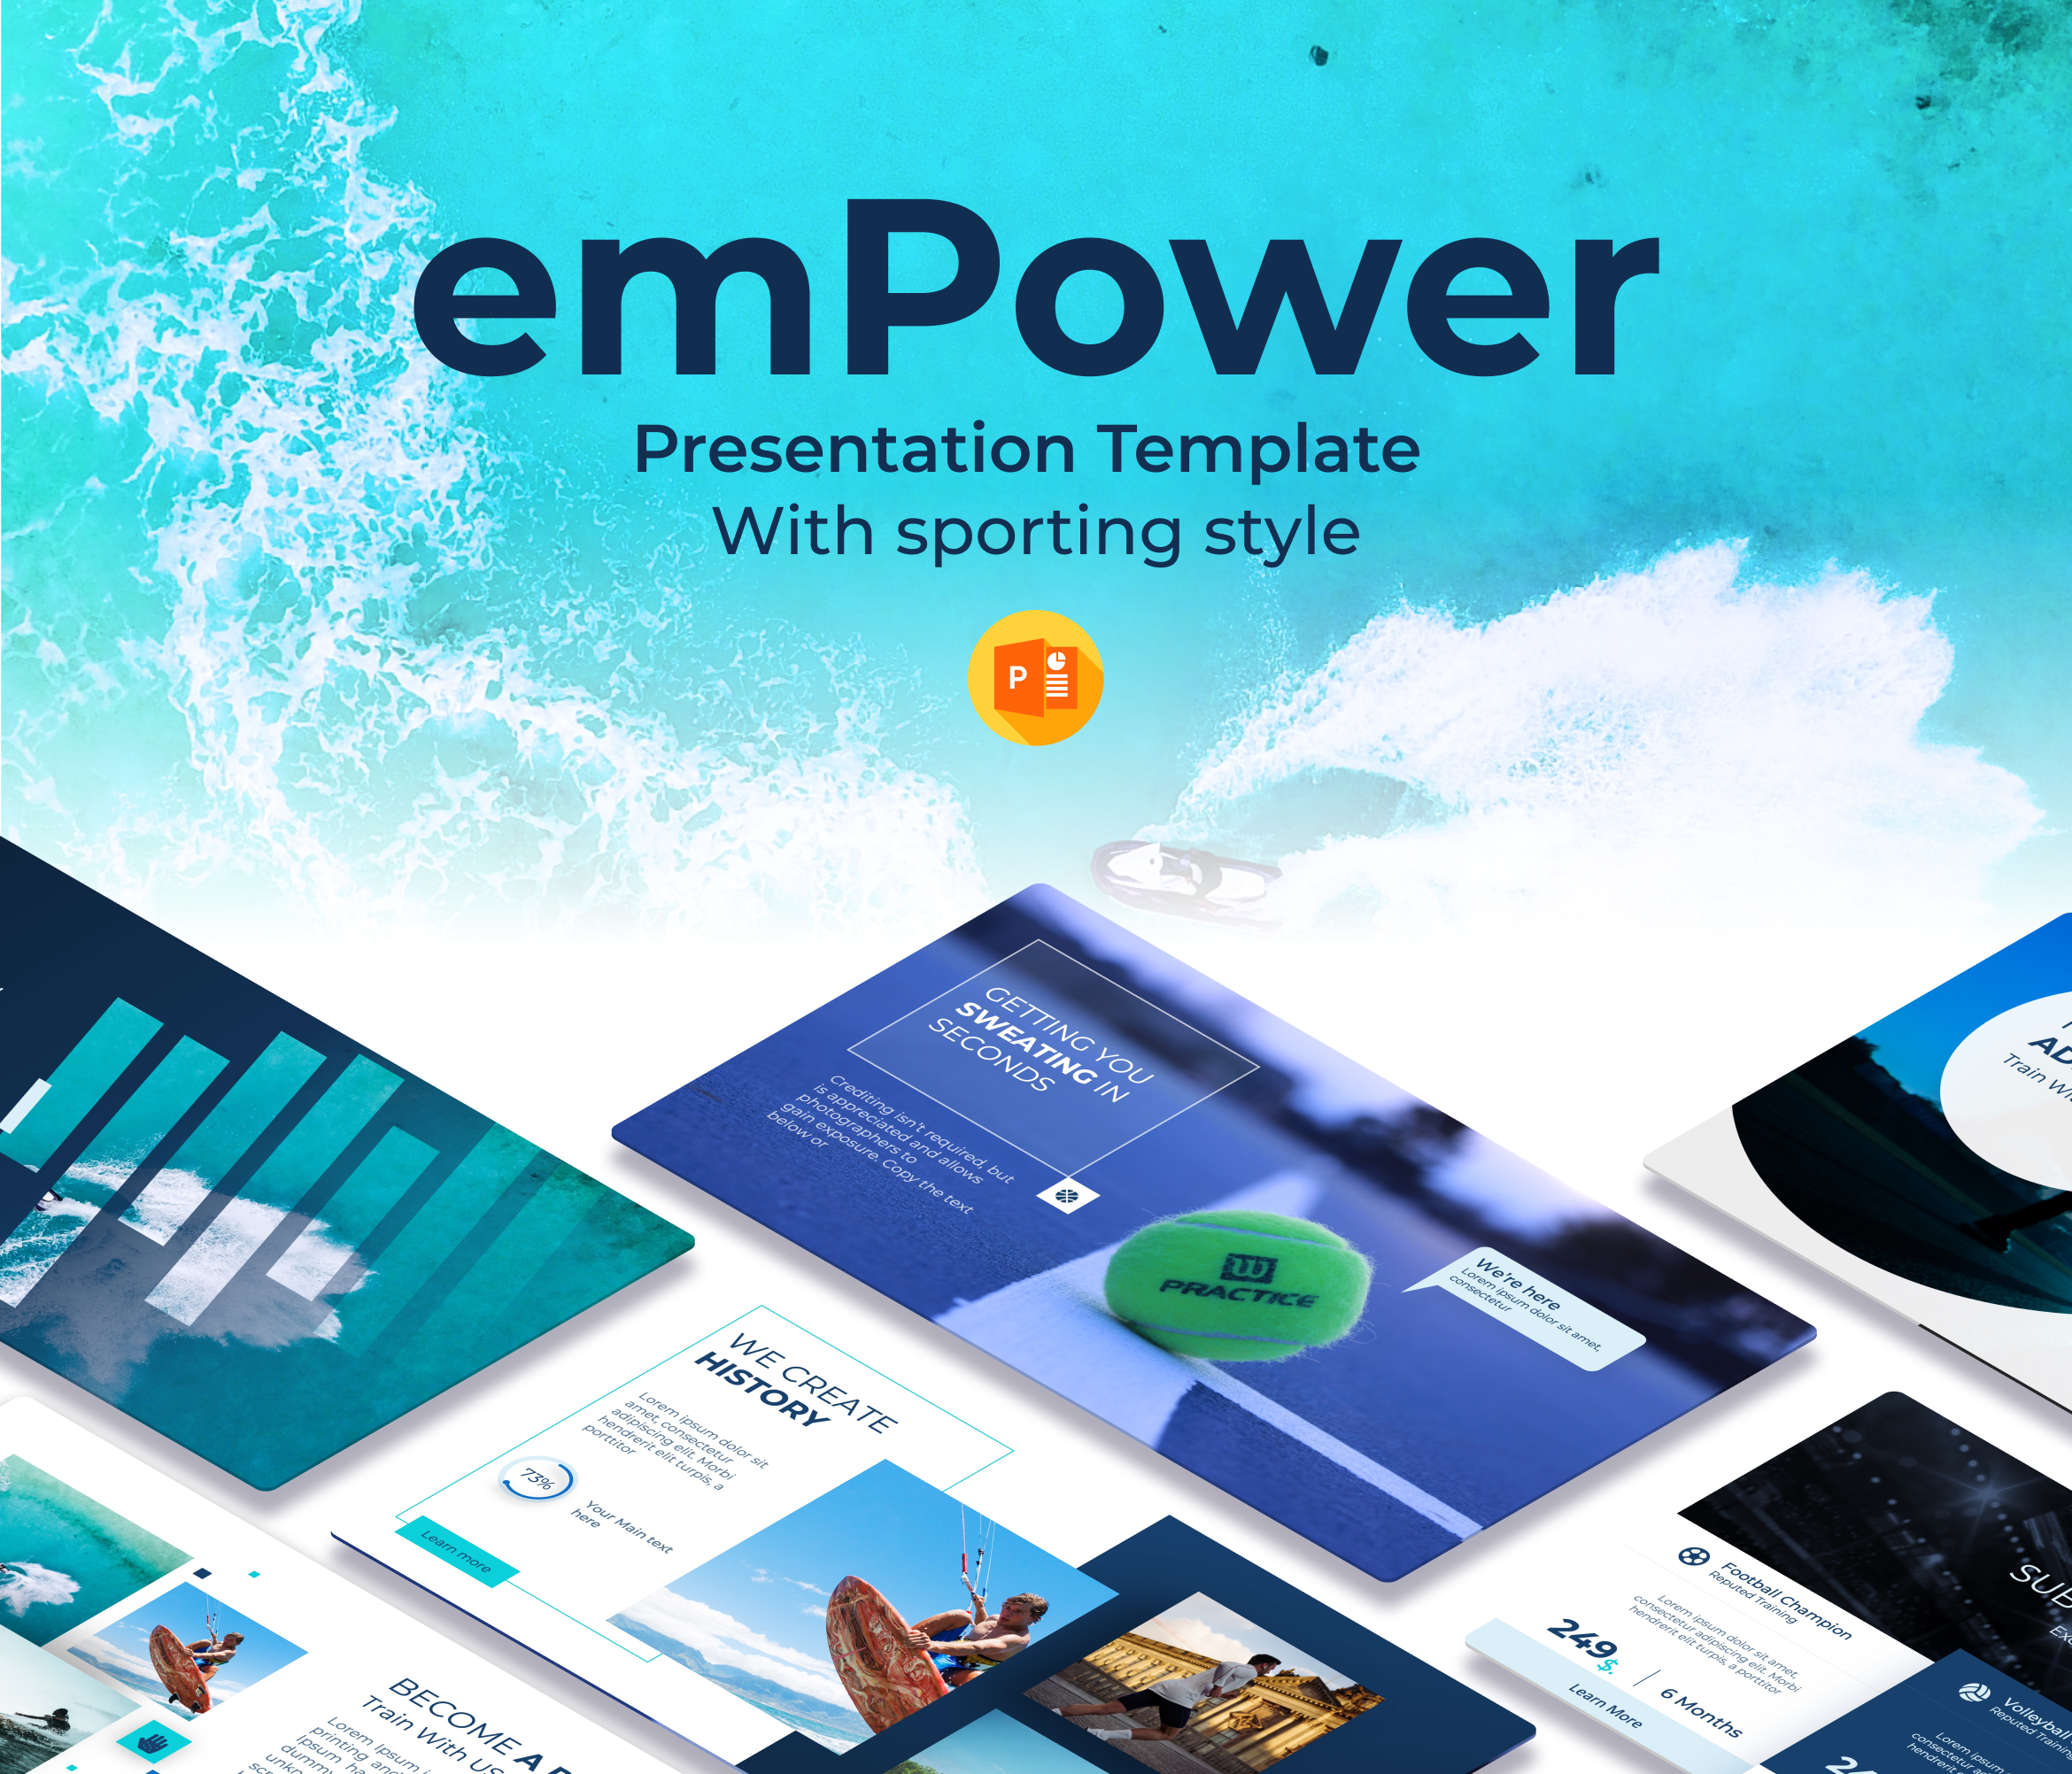 Empower Free Sports PPT Presentation template